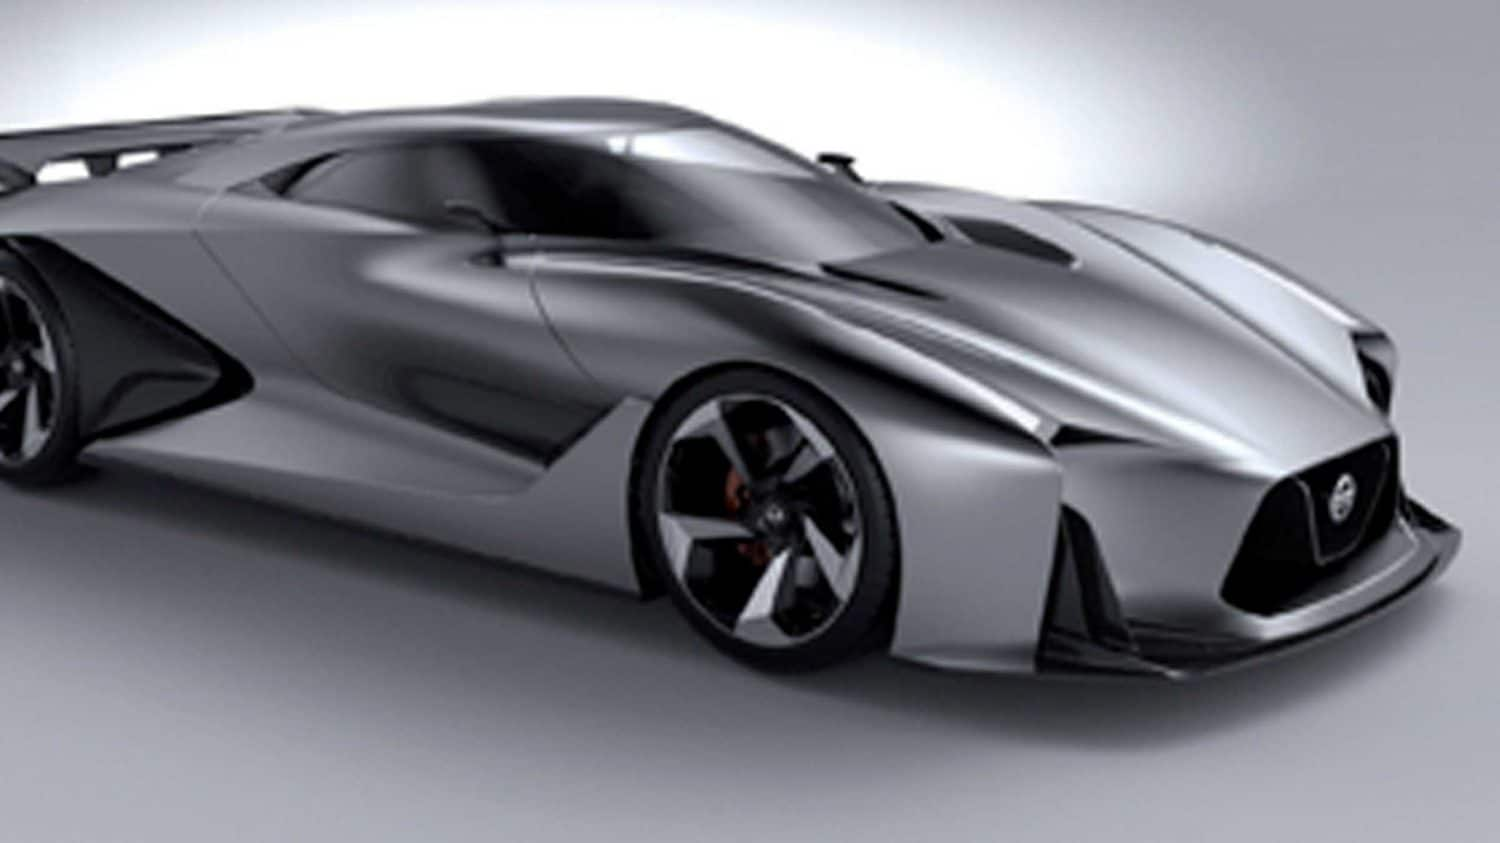 21 Great Nissan Gtr Nismo 2020 Specs and Review with Nissan Gtr Nismo 2020